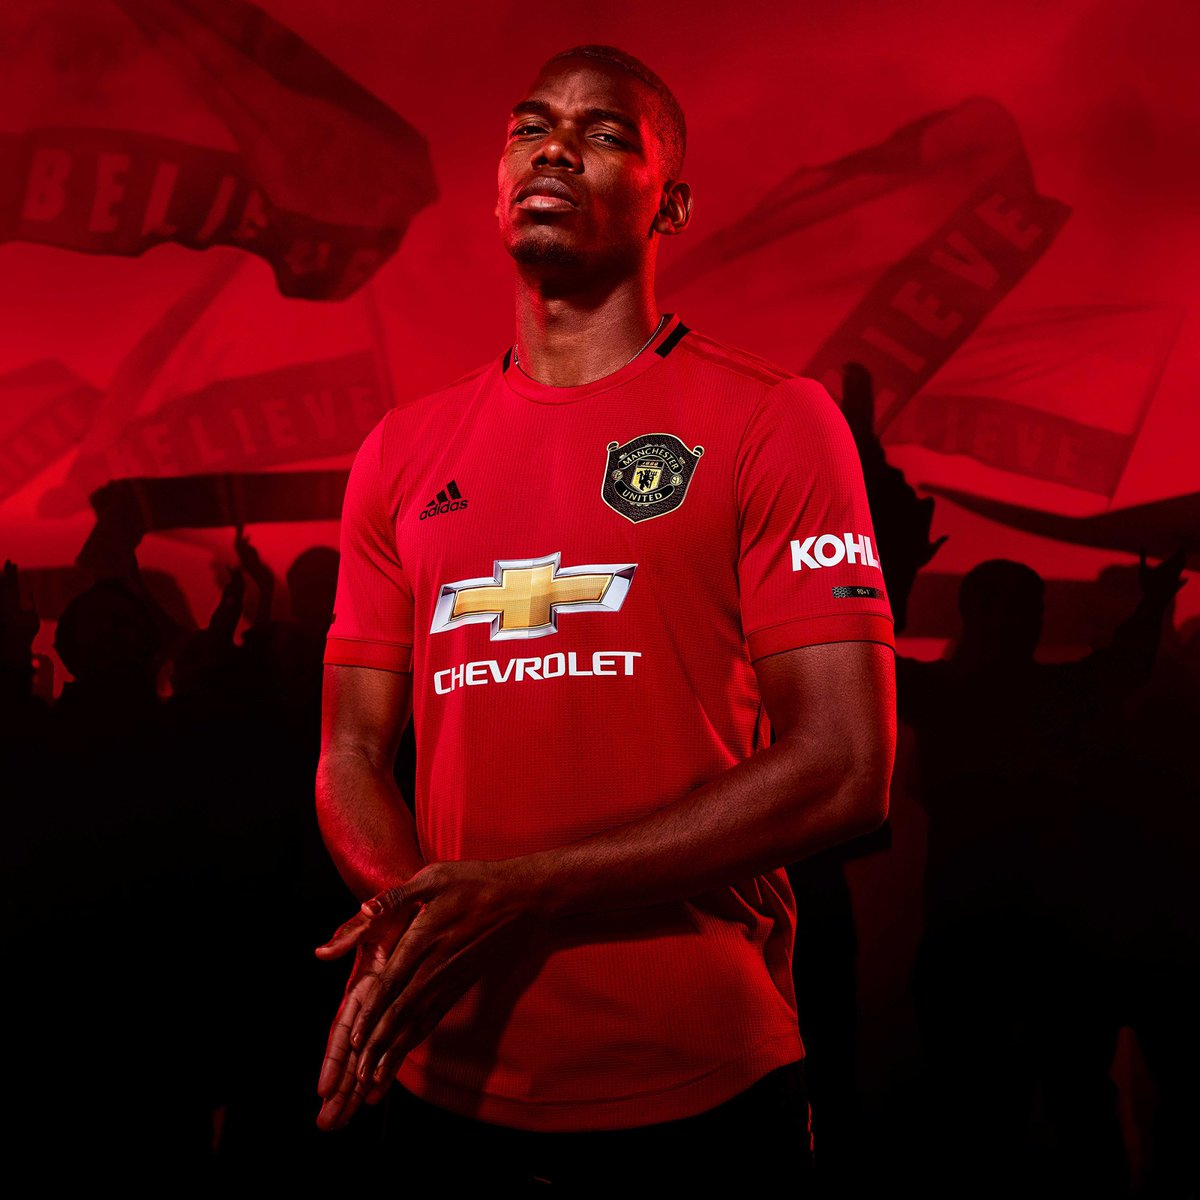 bfb2349e Shirt Alert: The new Manchester United home shirt has been revealed What do  you think?pic.twitter.com/3HvToOkDPR